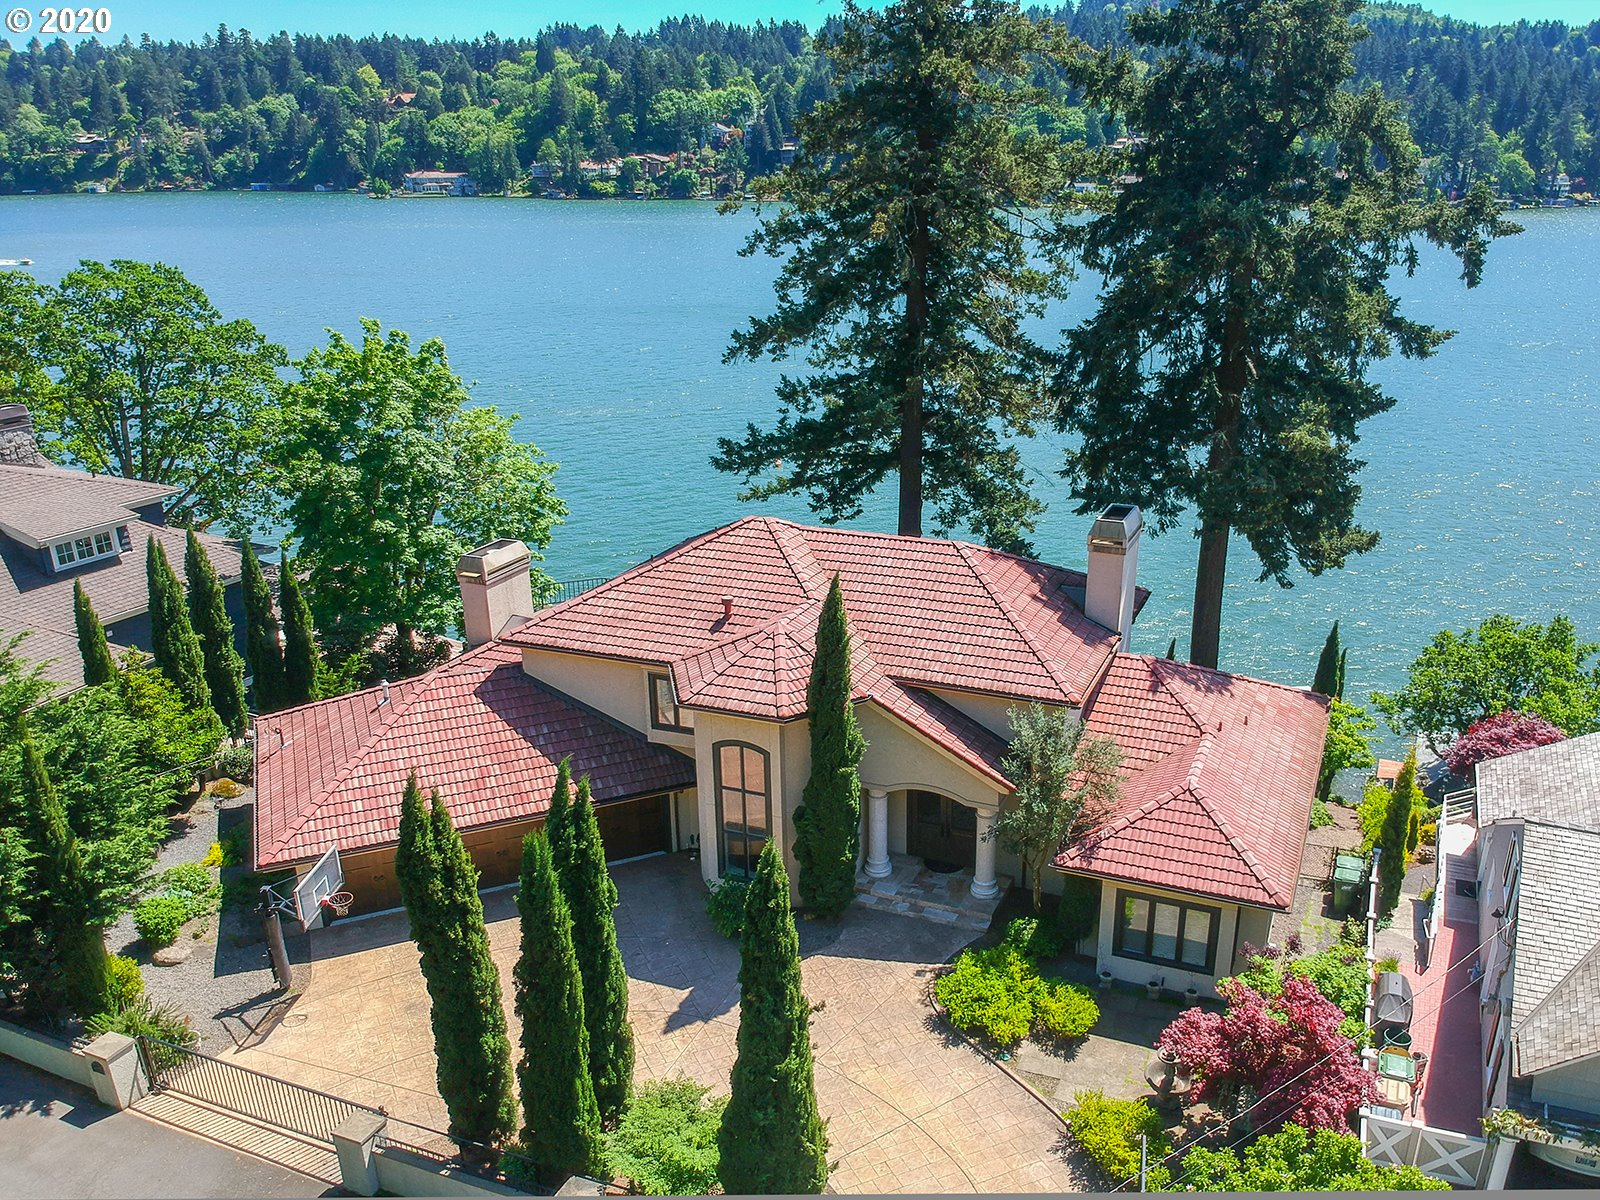 Photo of 3358 LAKEVIEW BLVD, Lake Oswego, OR 97035